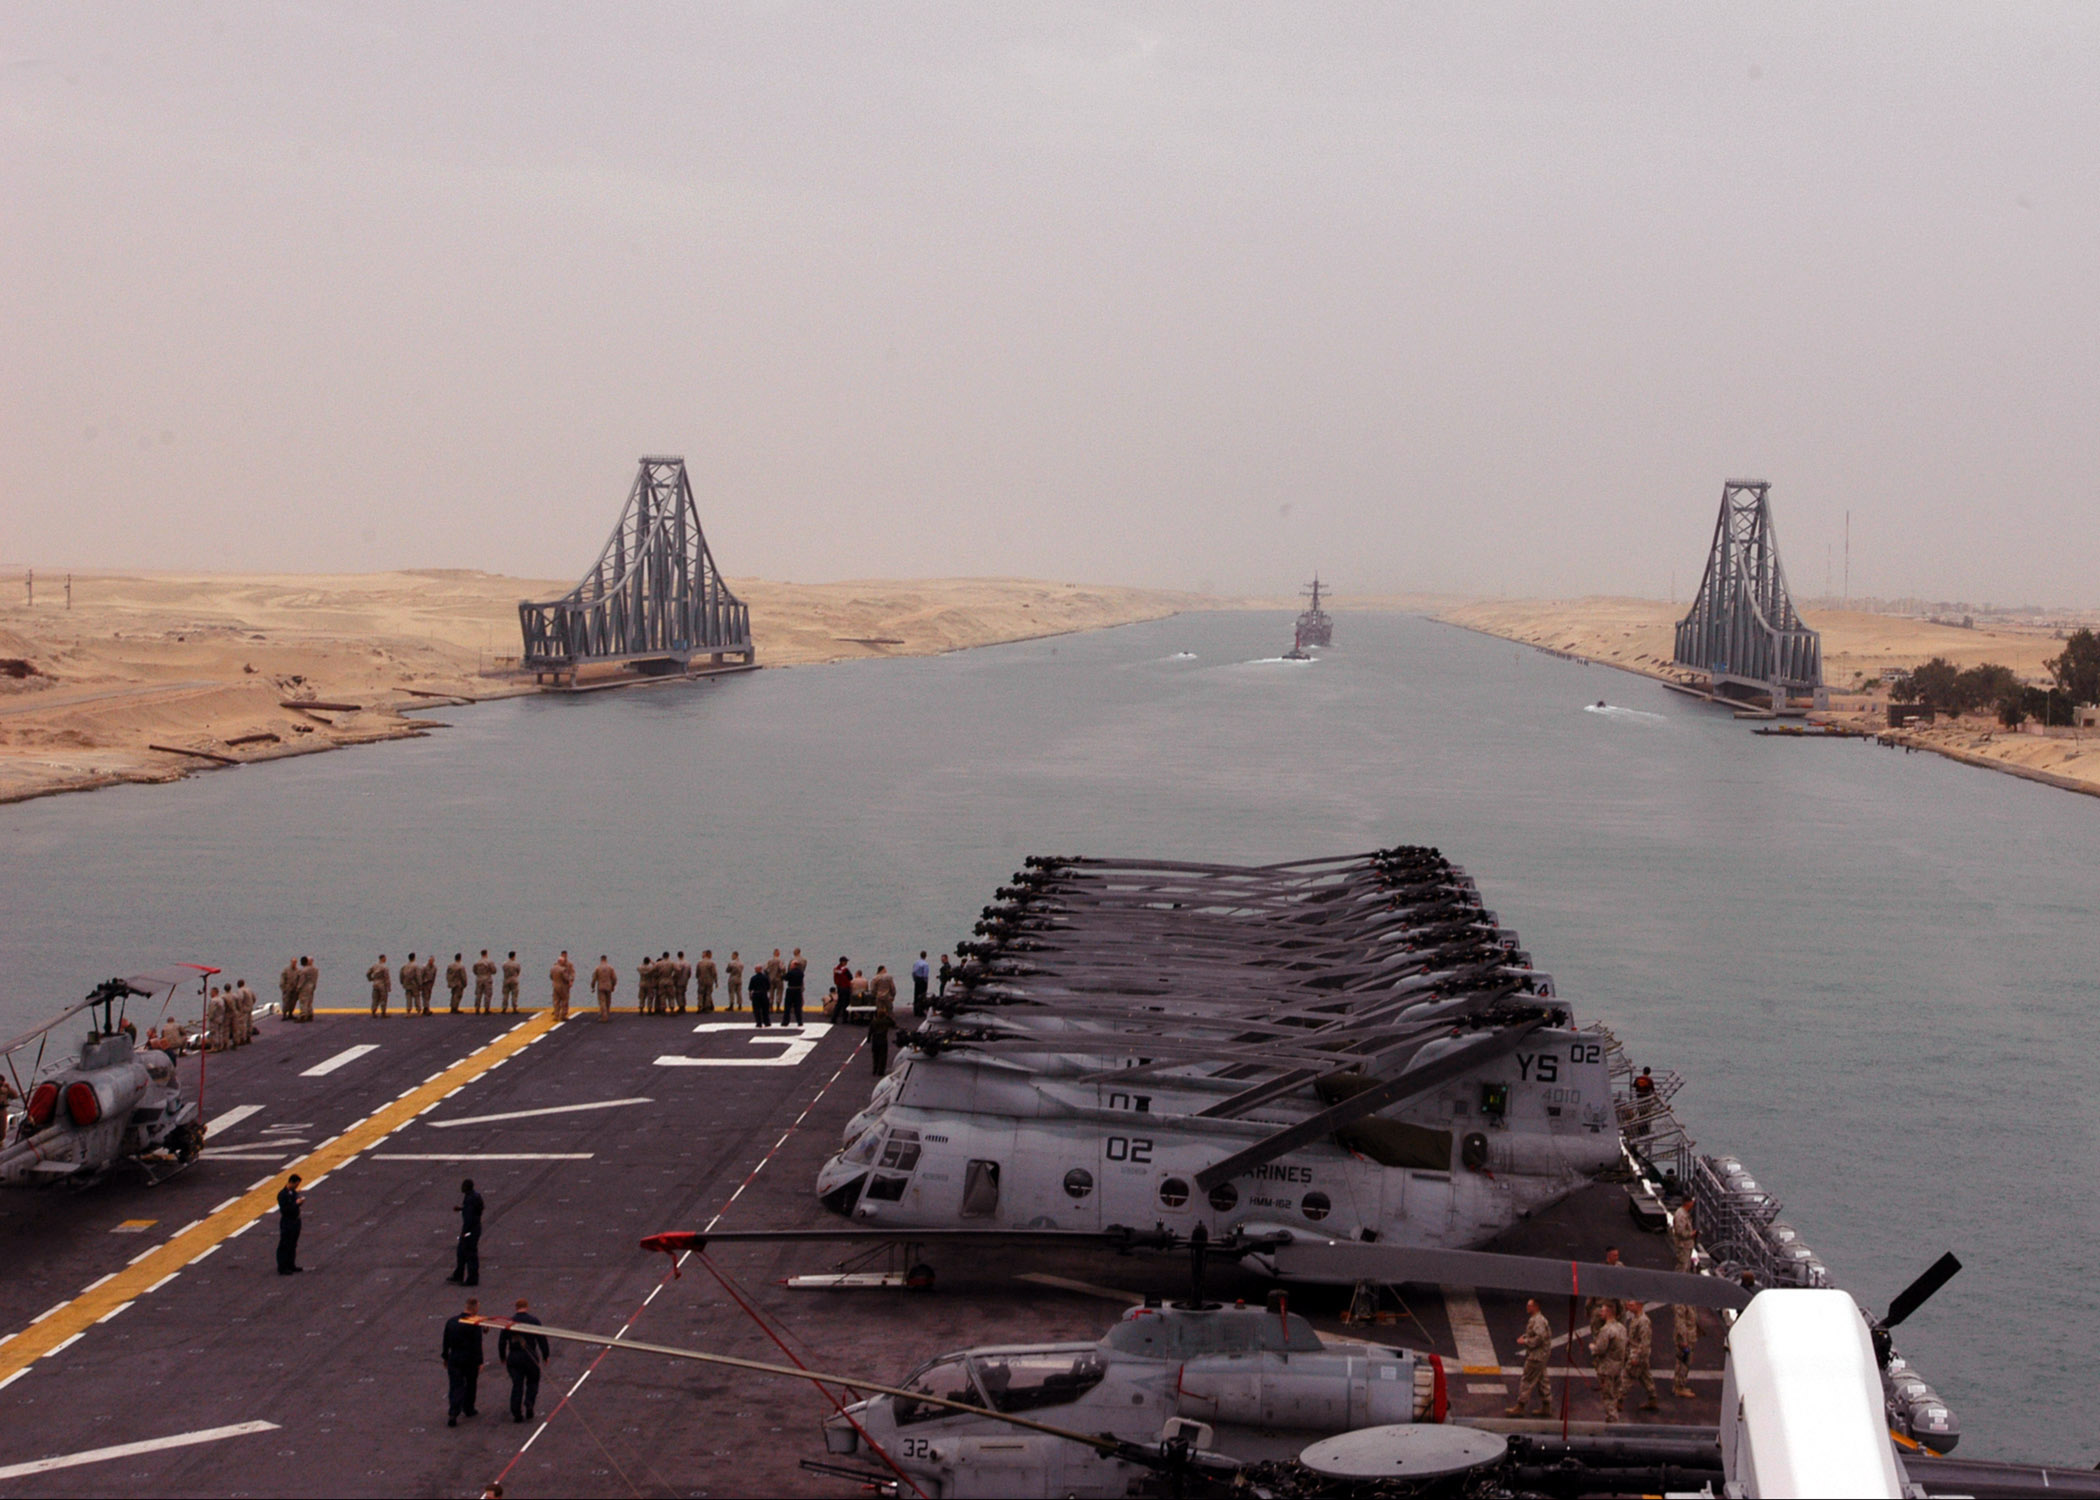 US_Navy_050422-N-3557N-016_The_amphibious_assault_ship%2C_USS_Kearsarge_%28LHD_3%29_transits_the_Suez_Canal_behind_the_guided_missile_destroyer_USS_Gonzalez_%28DDG_66%29.jpg